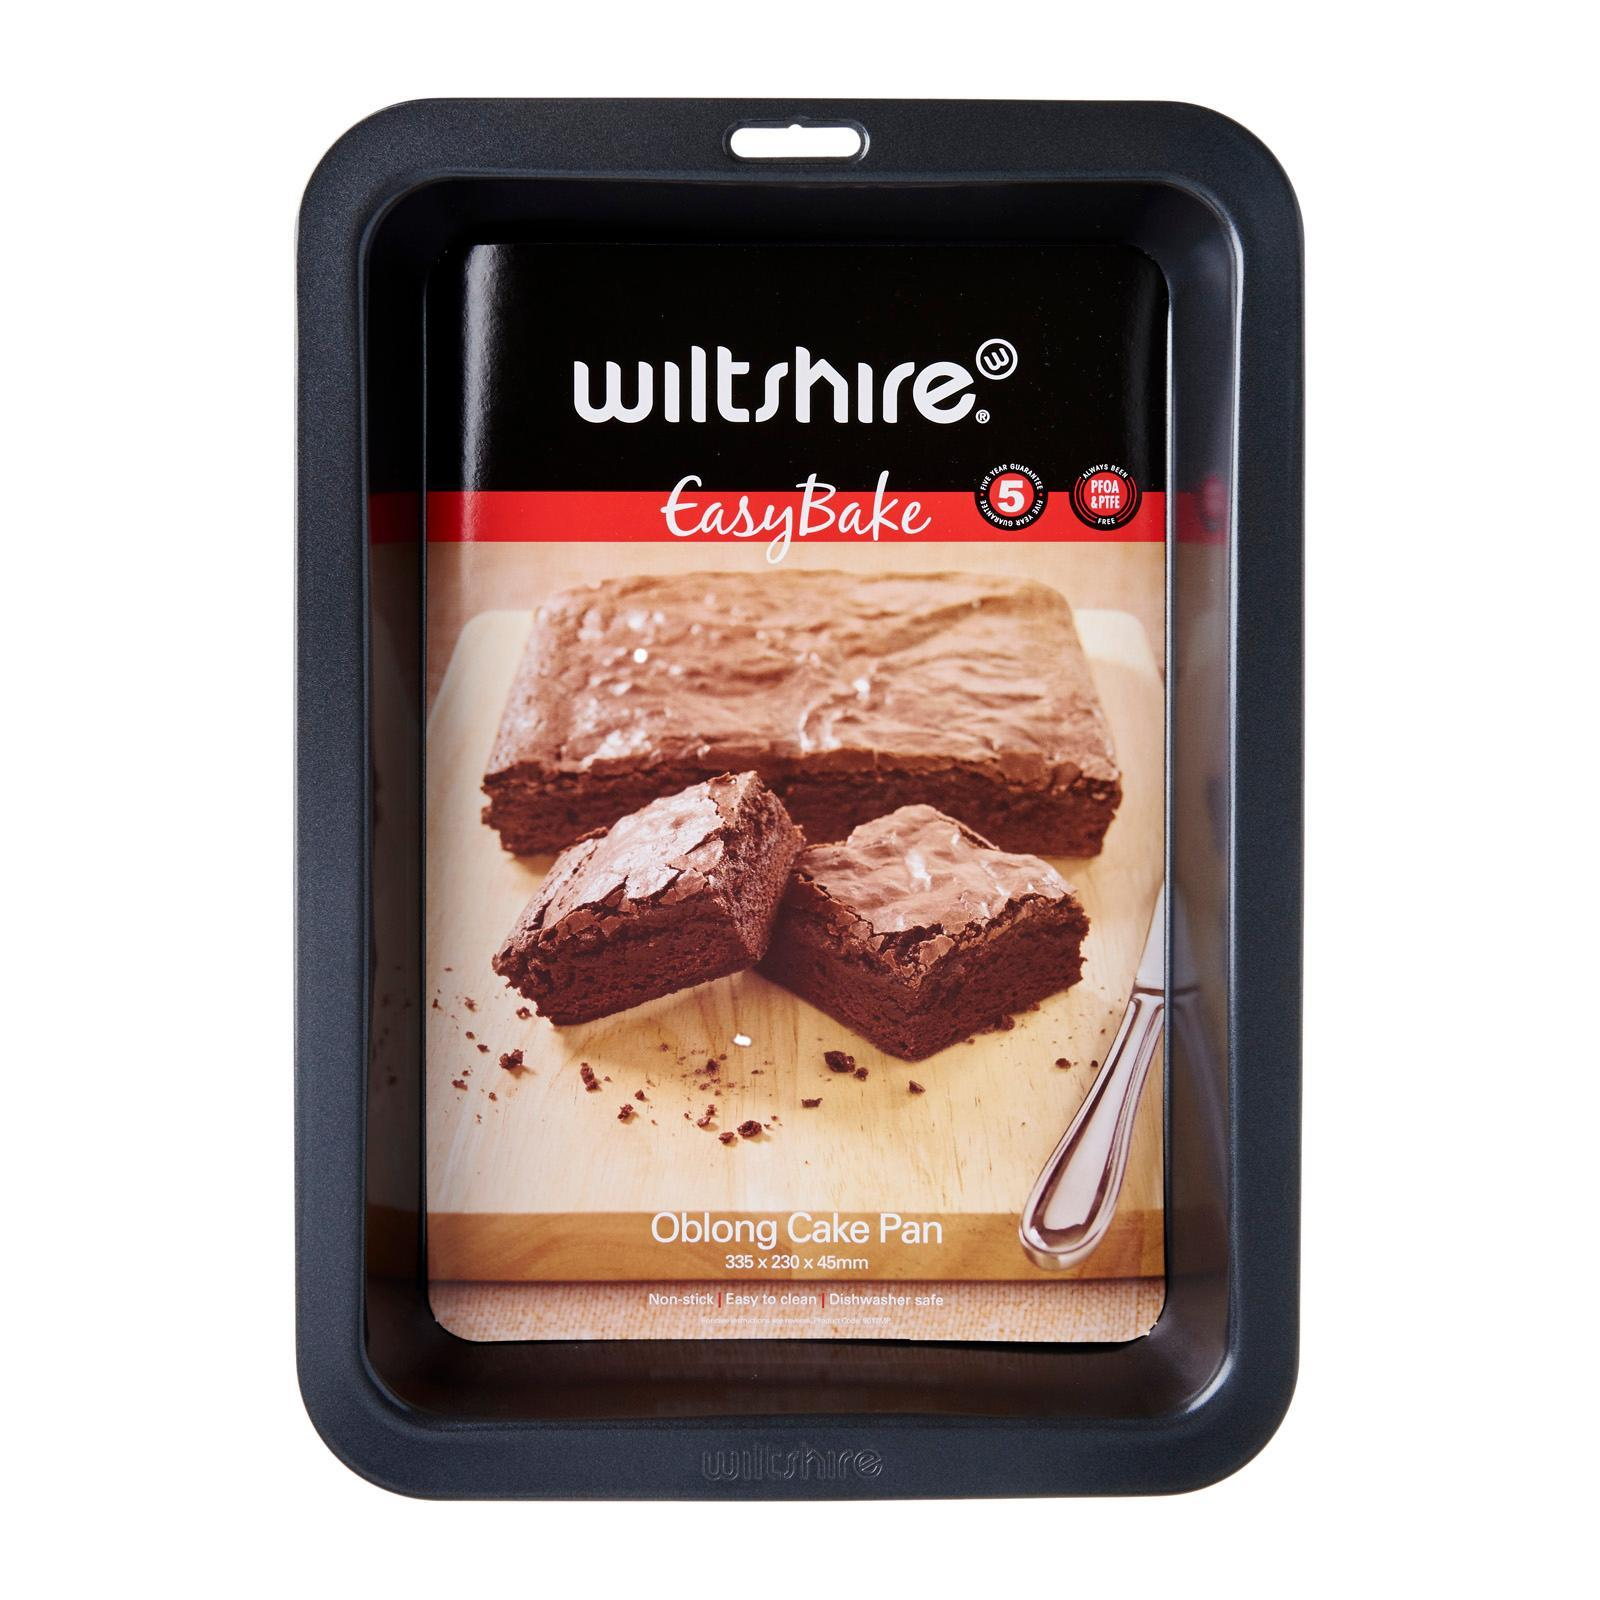 Wiltshire Oblong Cake Pan